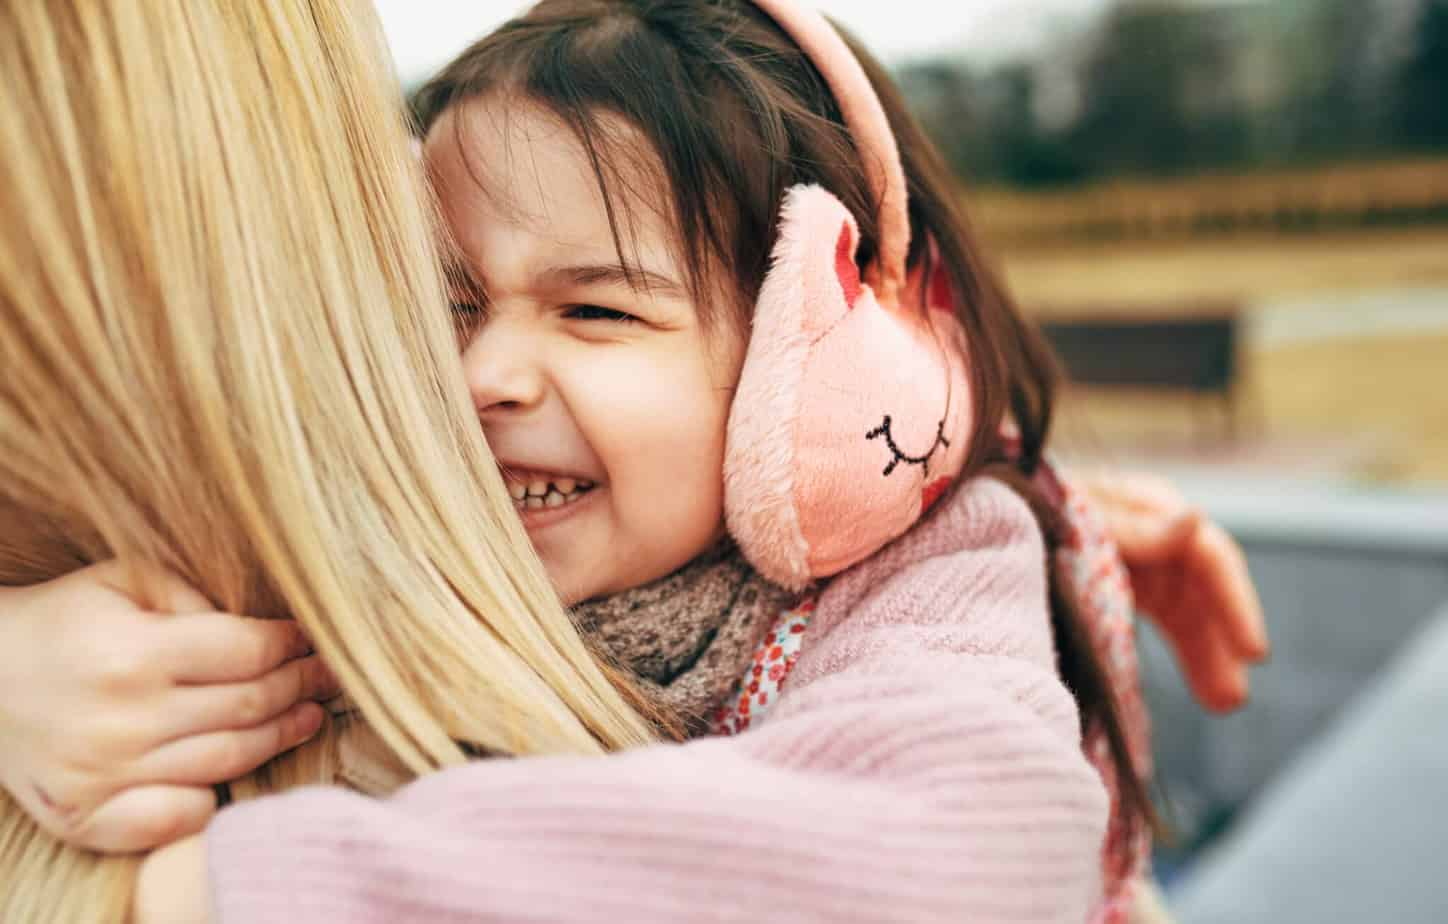 Get kids to listen and give you their attention, without raising your voice or yelling. Positive parenting tools to create a positive environment for connection, respect, and age-appropriate power.